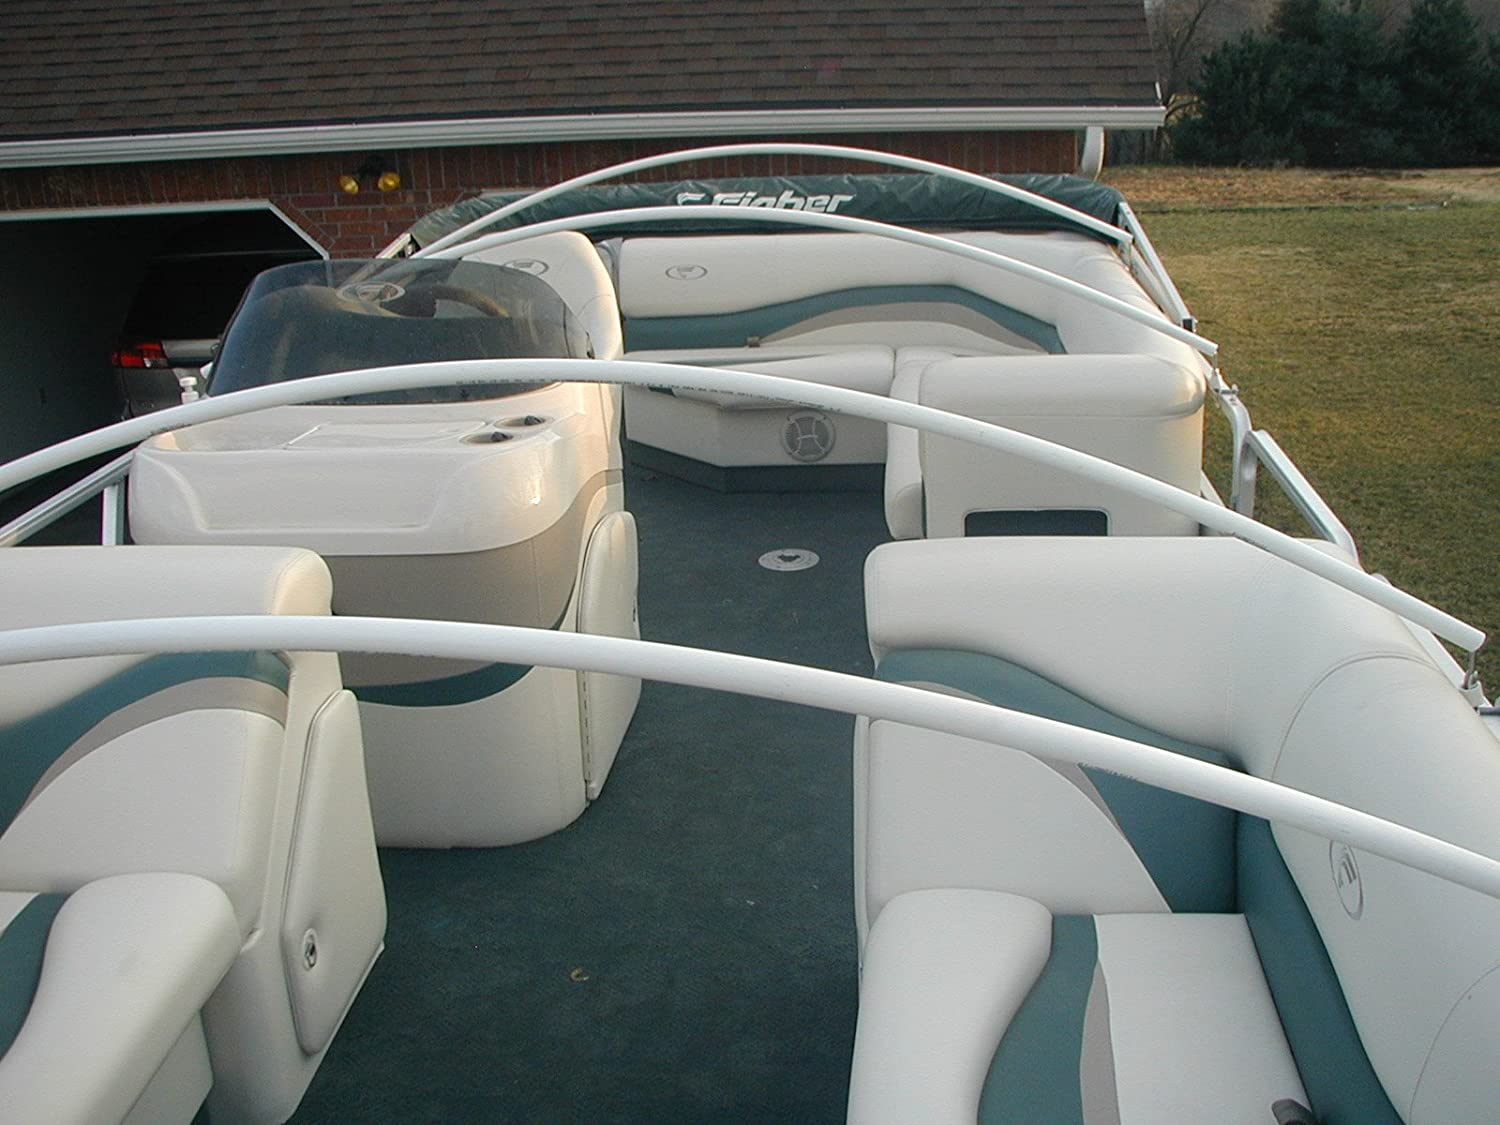 Amazon.com : Arnallu0027s Standard Arch Support System For Pontoon Covers :  Pontoon And Playpen Style Boat Covers : Sports U0026 Outdoors